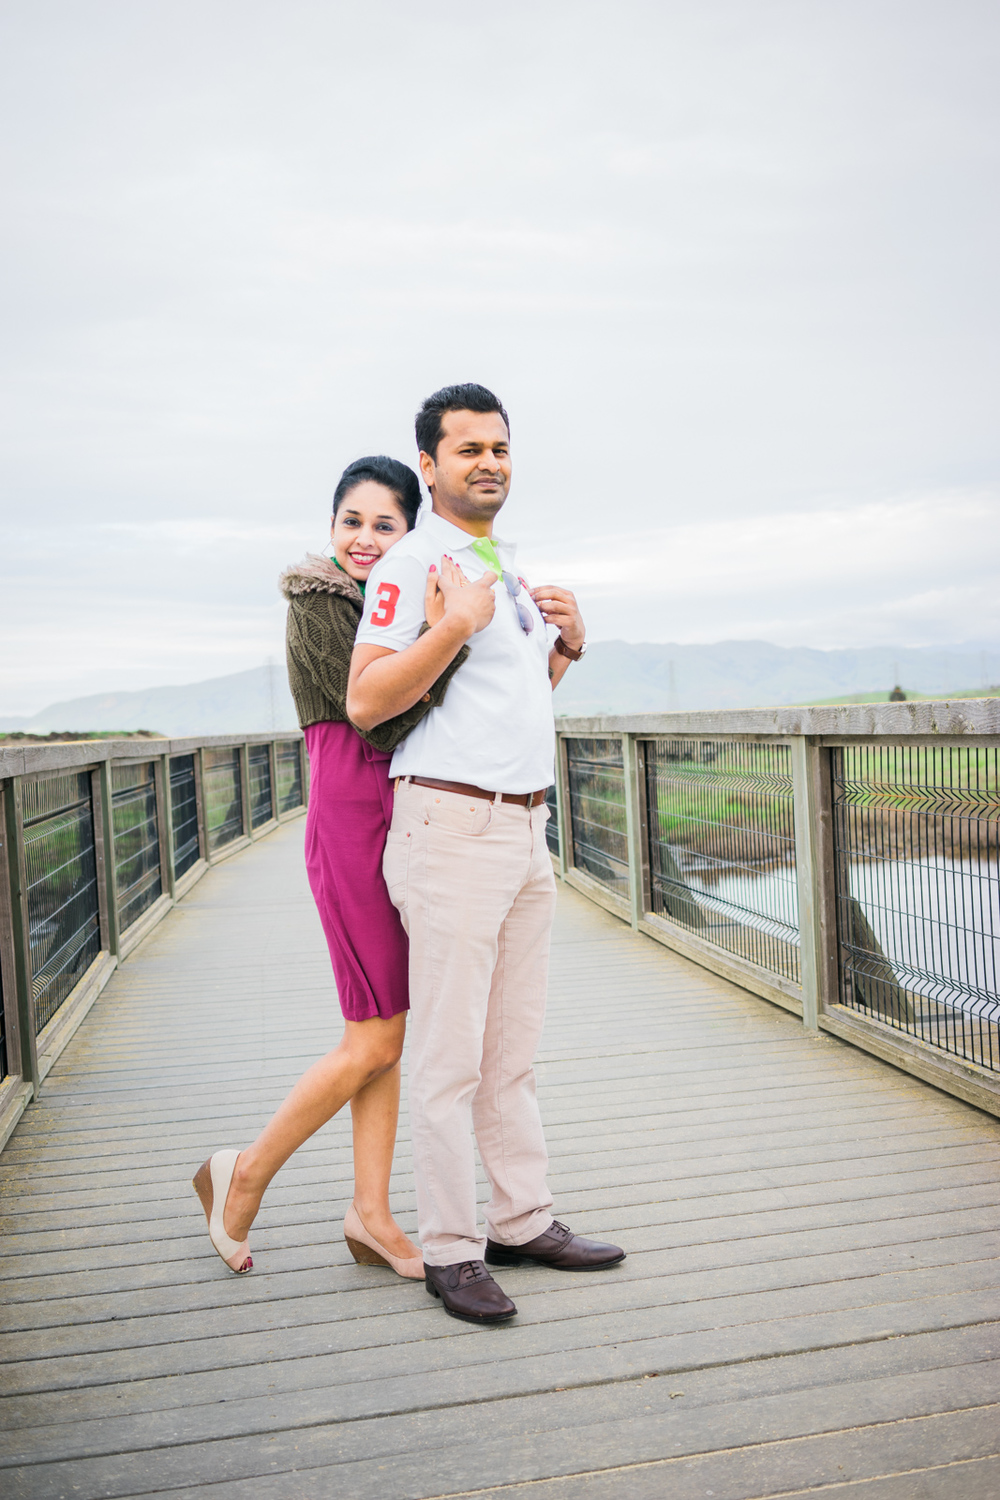 Baylands-park-valentines-day-couples-engagement-lifestyle-photography-sunnyvale-afewgoodclicks.net-84.jpg